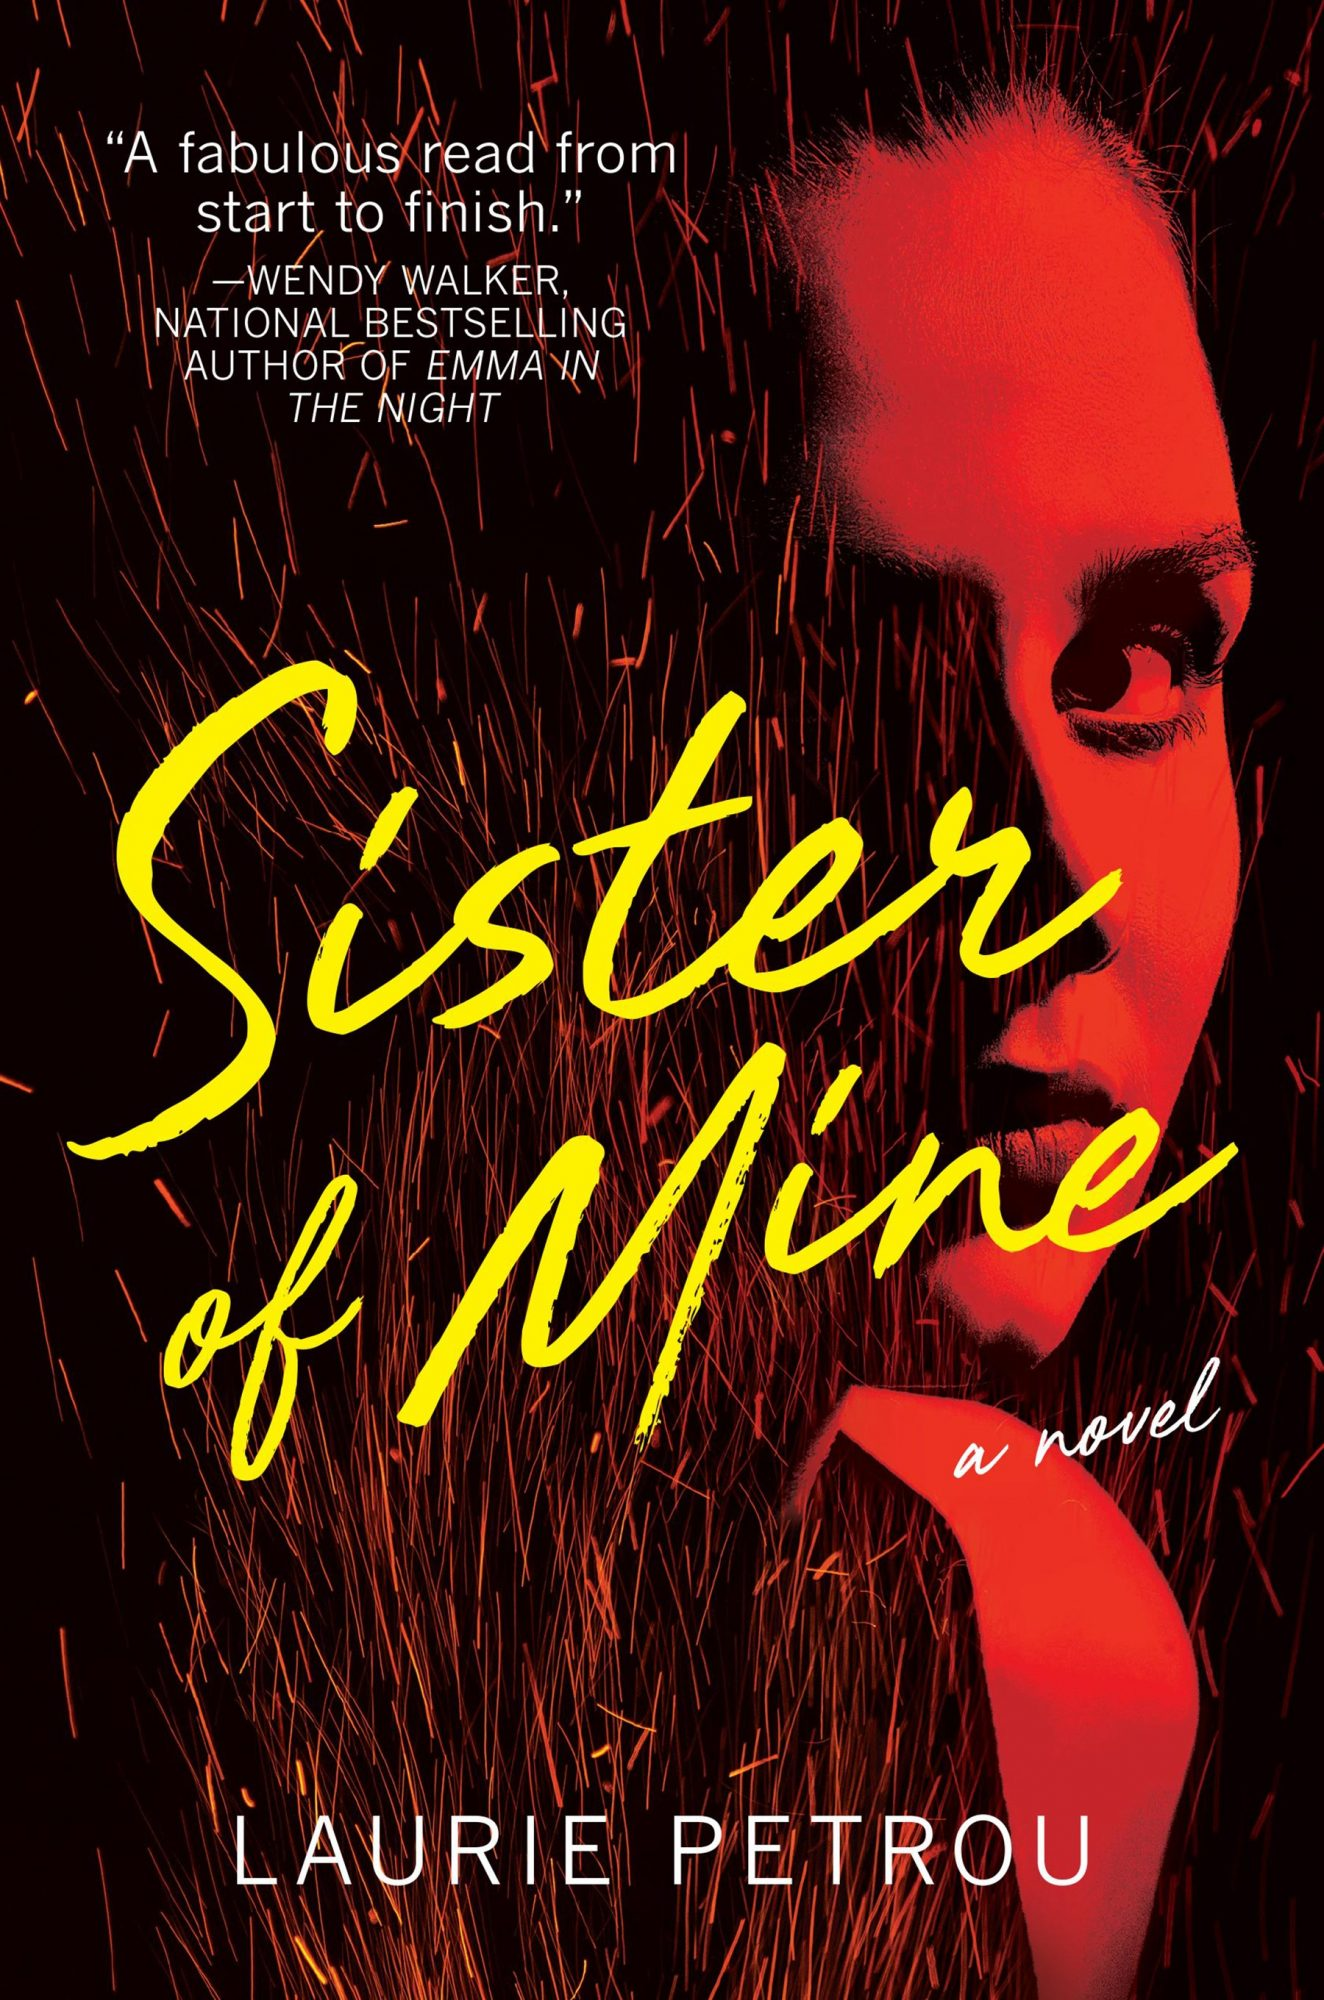 Sister of Mine: A Novel Hardcover  by Laurie Petrou Crooked Lane Books